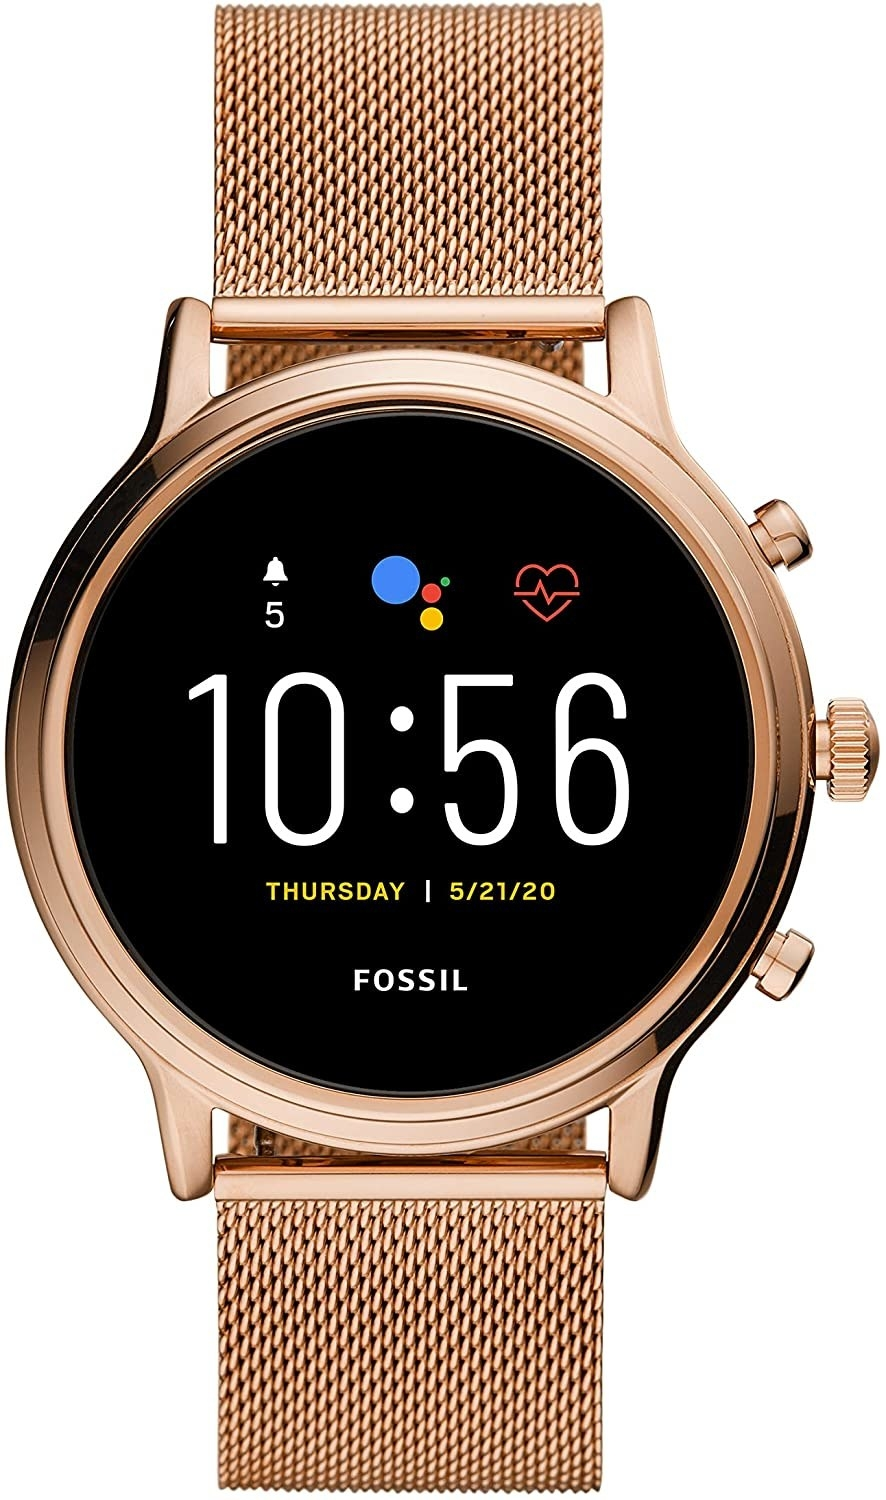 The round smartwatch in gold tone with a mesh link band